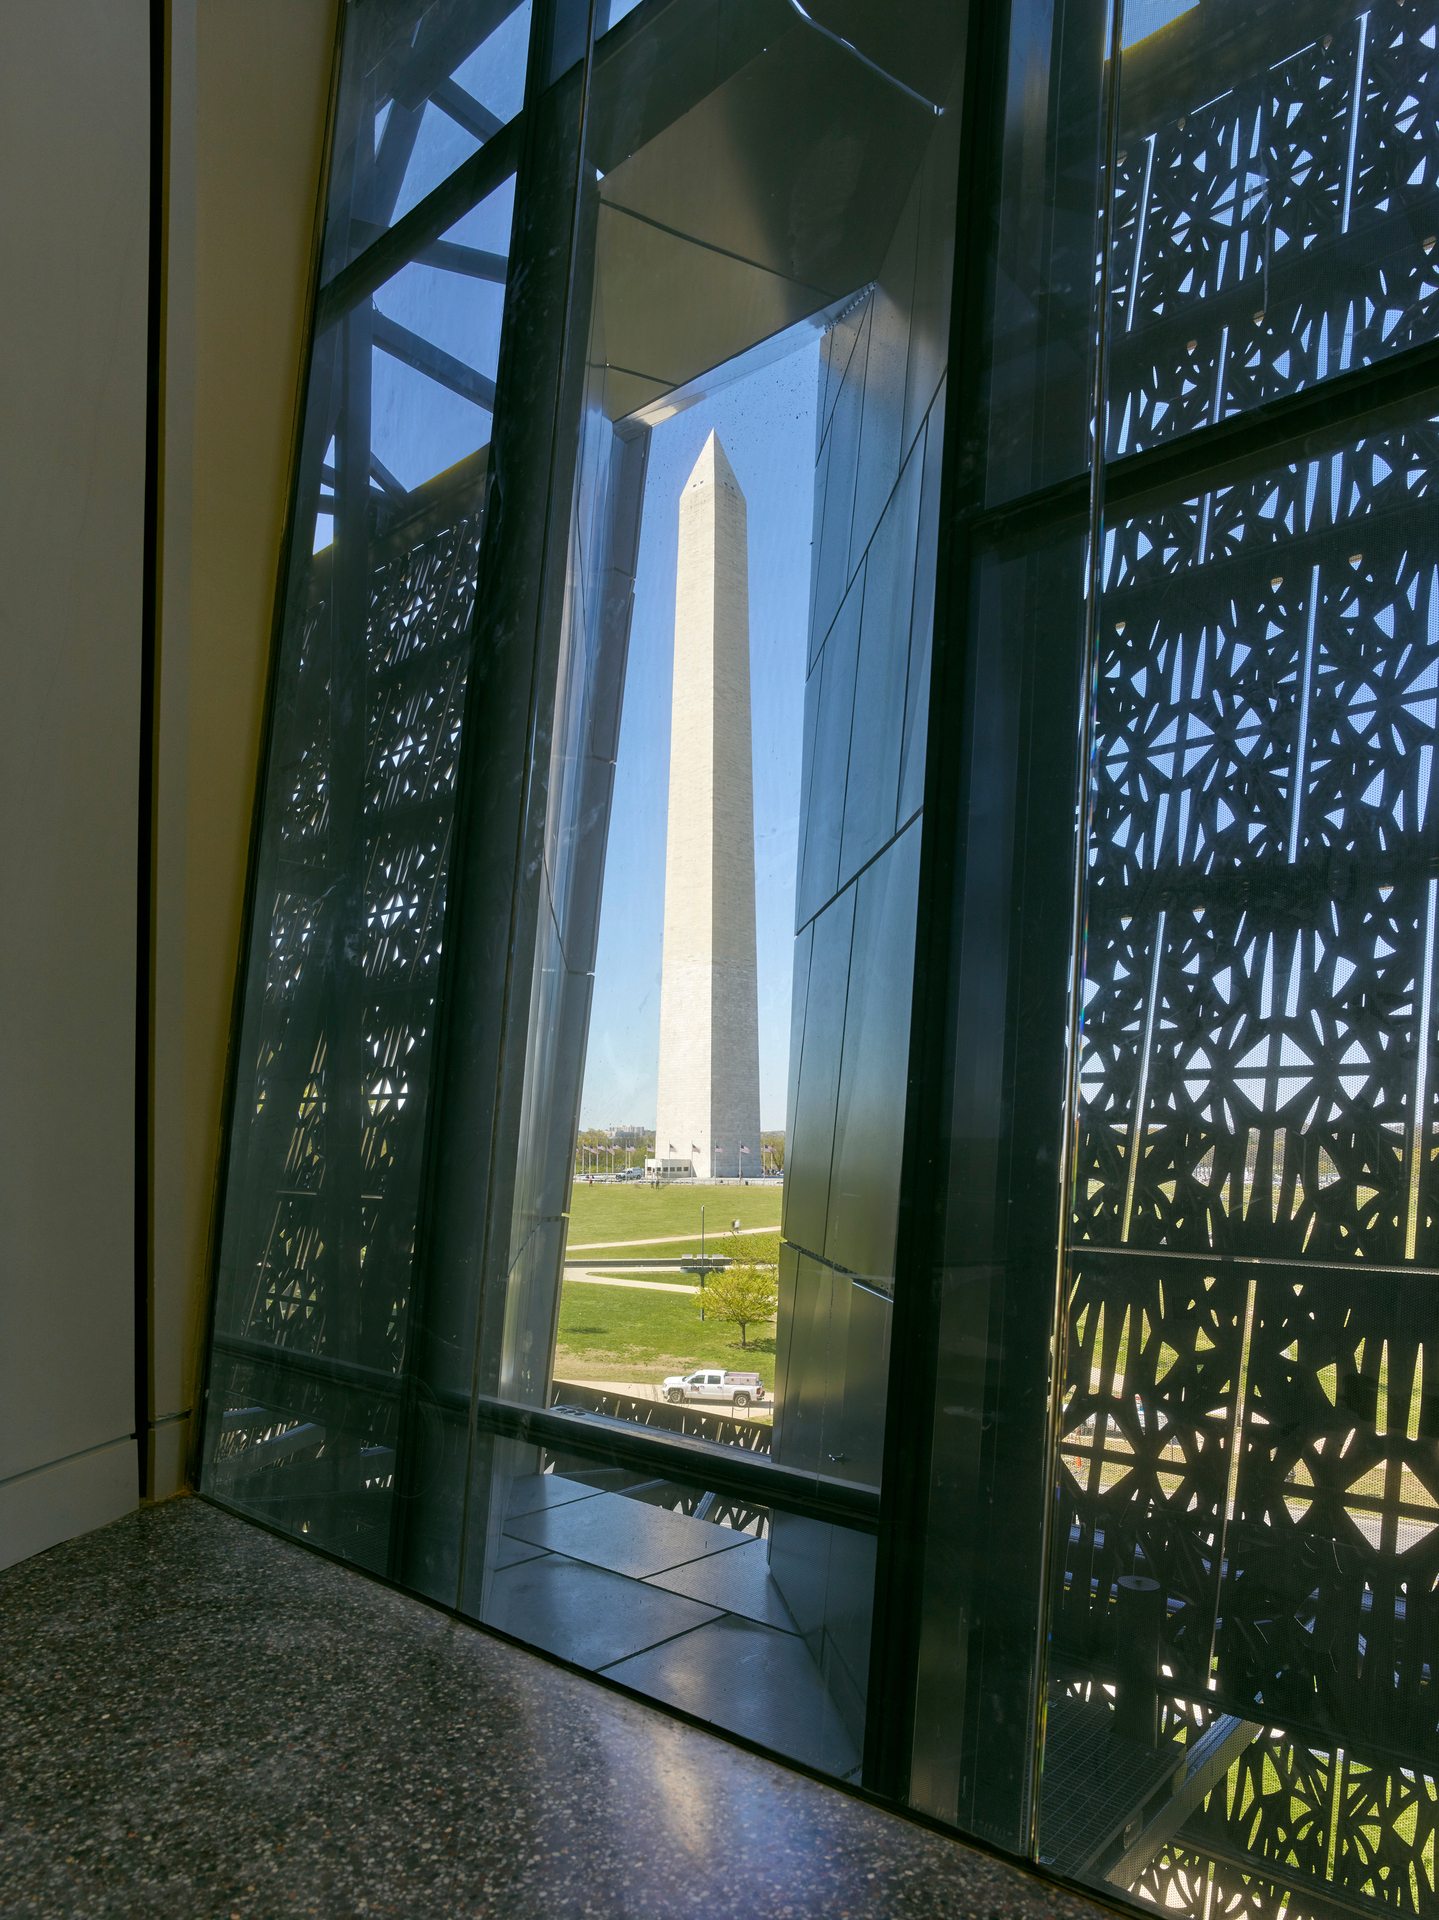 The building is an important landmark for the nation and is built on the last available spot on the National Mall in Washington D.C. To ensure the success of this prominent project, many partners were called together to work collaboratively during the design and construction phases; each brought different expertise to the project.   Photography Credit: Alan Karchmer